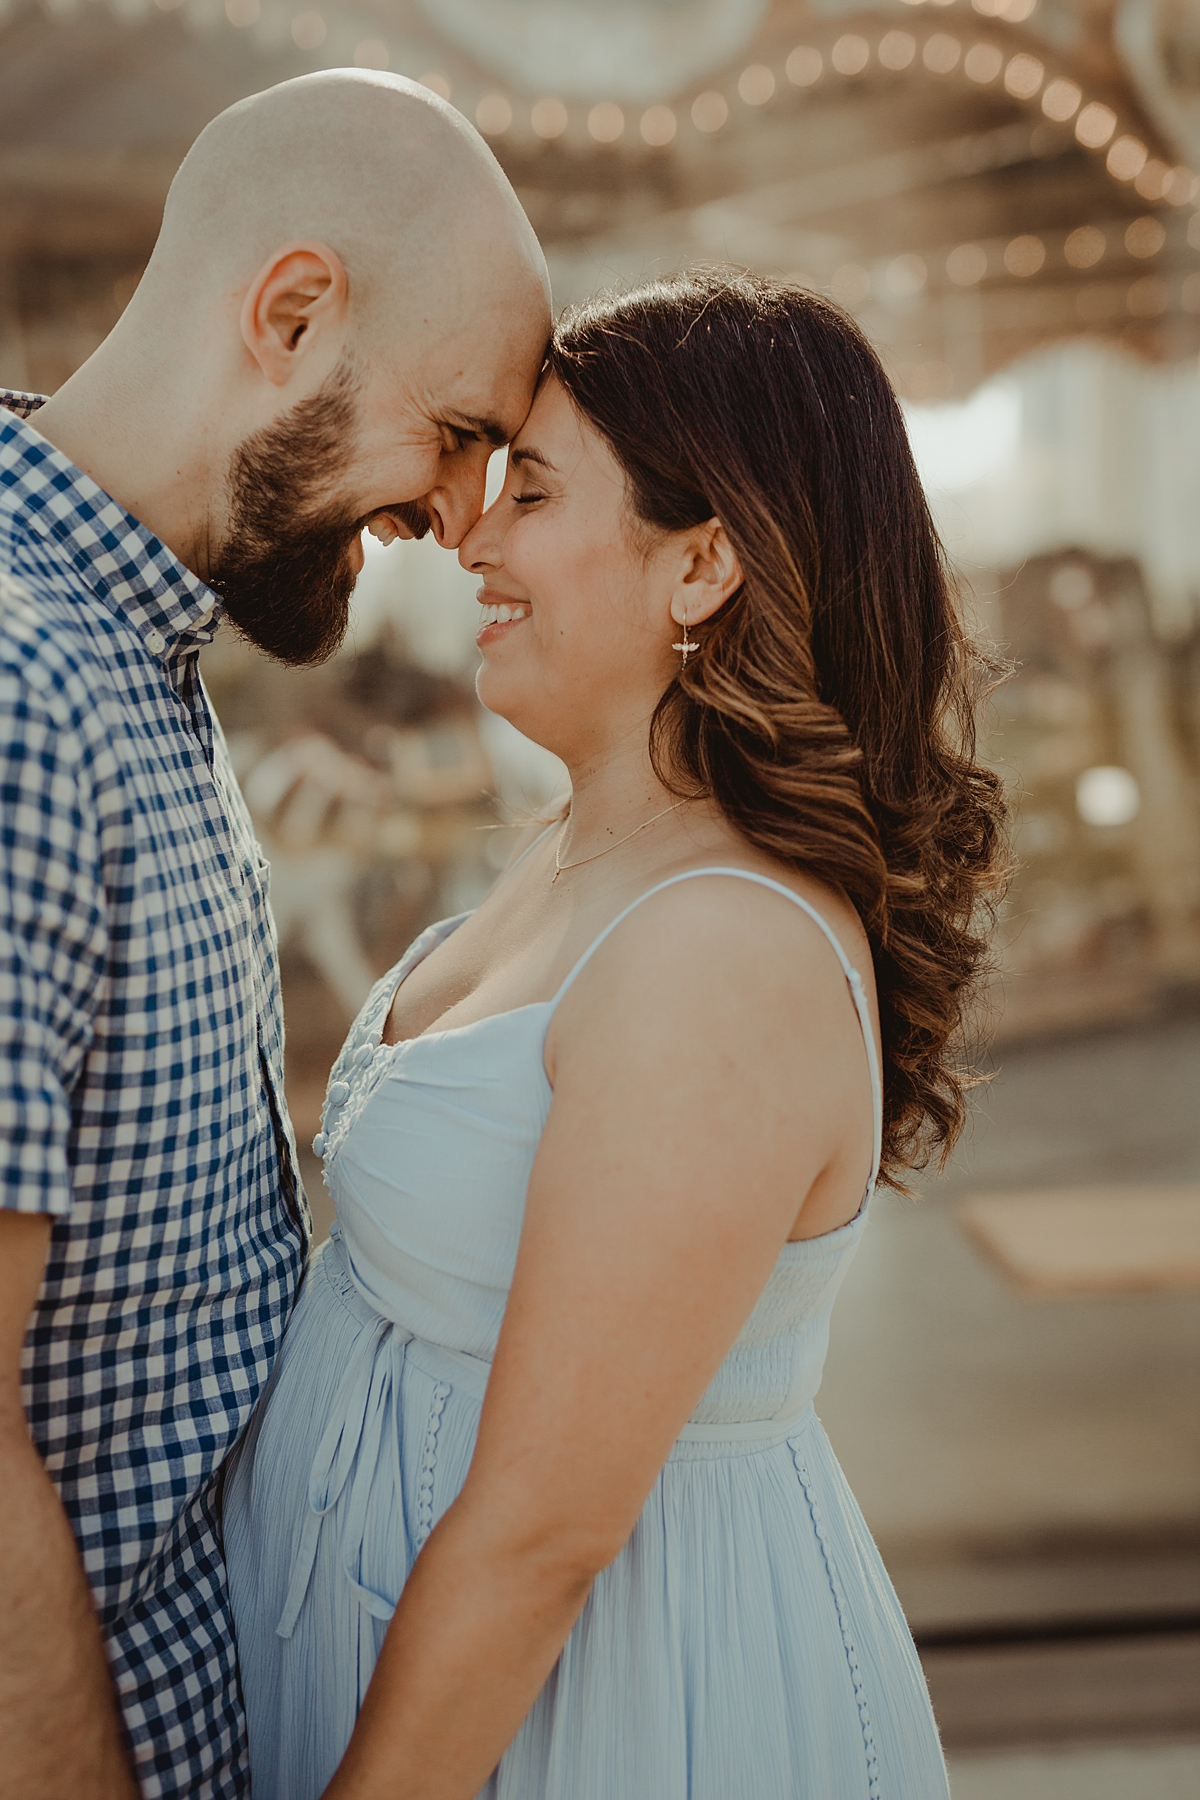 Orange County family photographer. Photo of expecting mom and dad standing in front of a carousel during outdoor maternity photo session with Krystil McDowall Photography